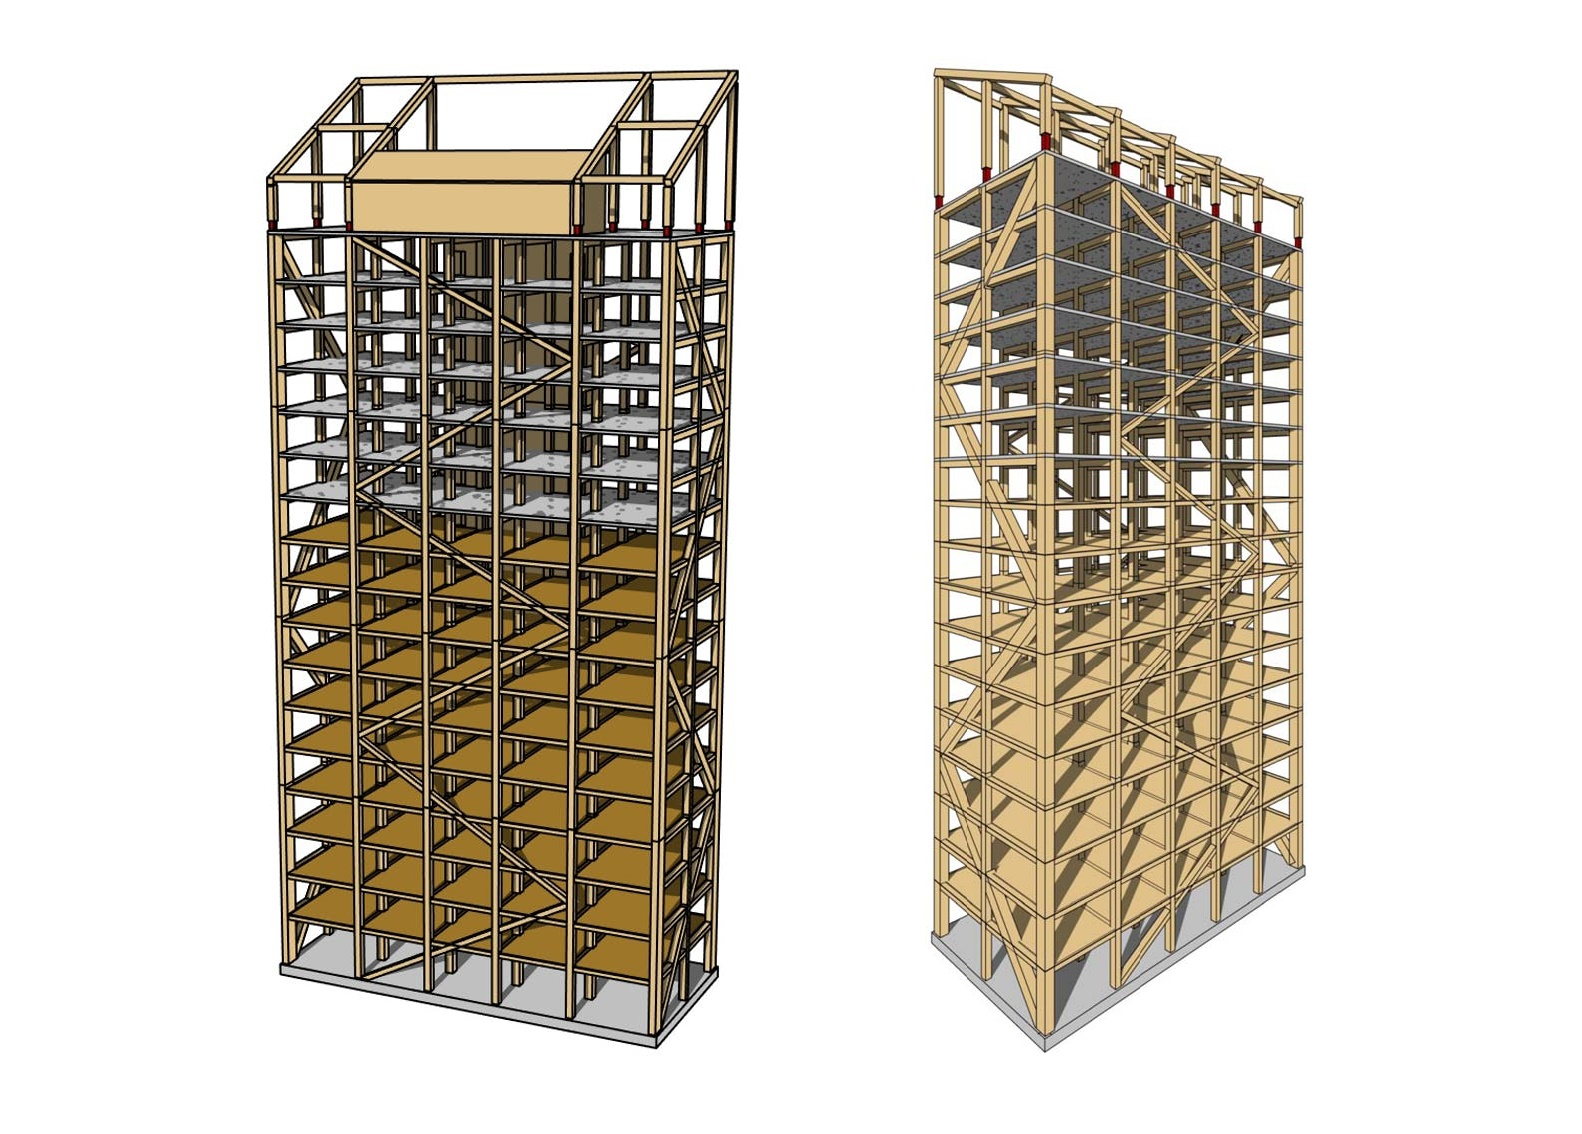 Mjøsa Tower - modello 3D - courtesy of Voll Arkitekter